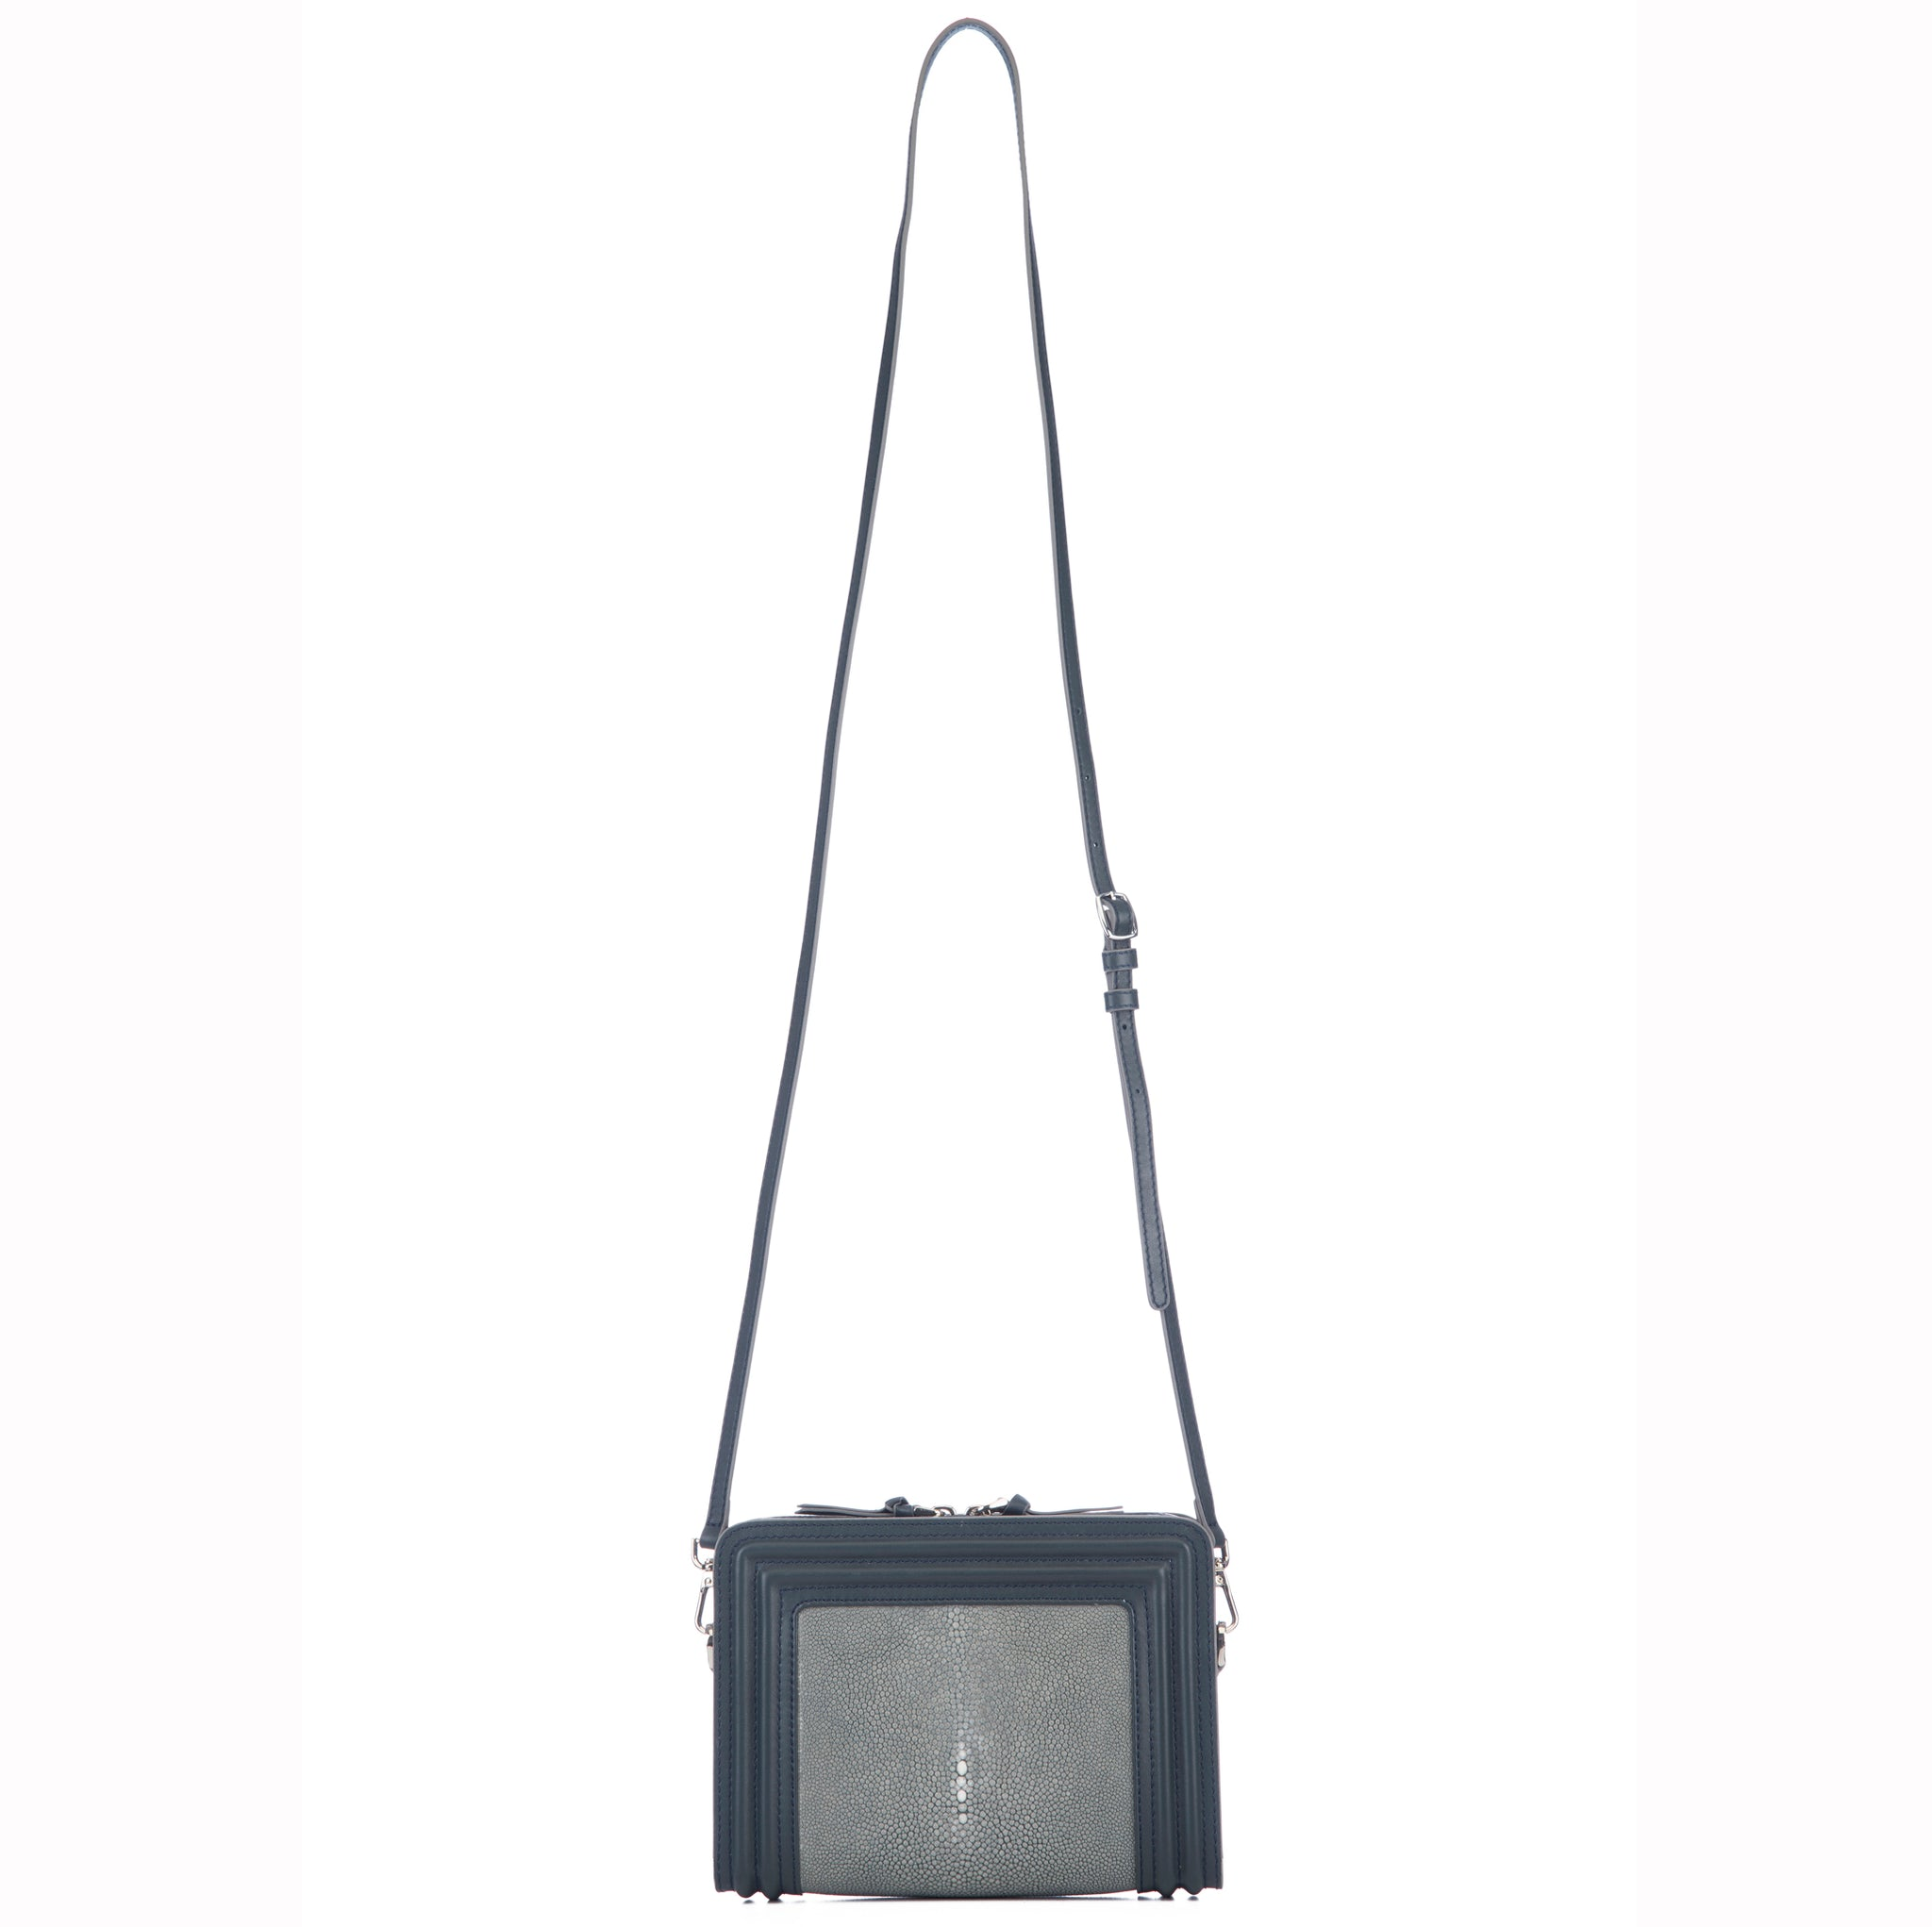 Gray Corded Leather Frames Gray Stingray Double Zipper Top Cross Body Bag Shoulder Strap View Nora - Vivo Direct